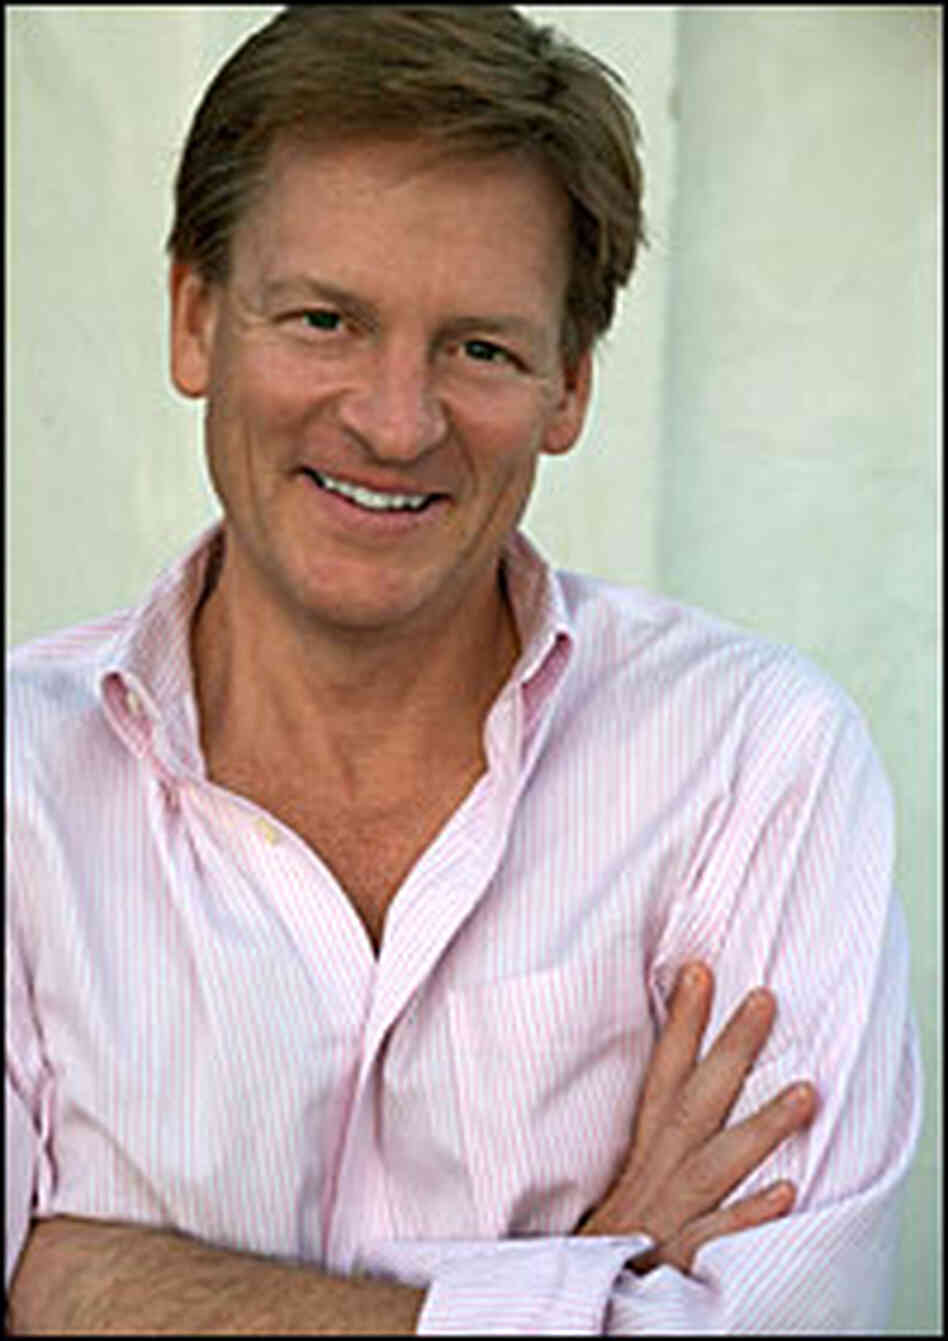 Author and editor Michael Lewis